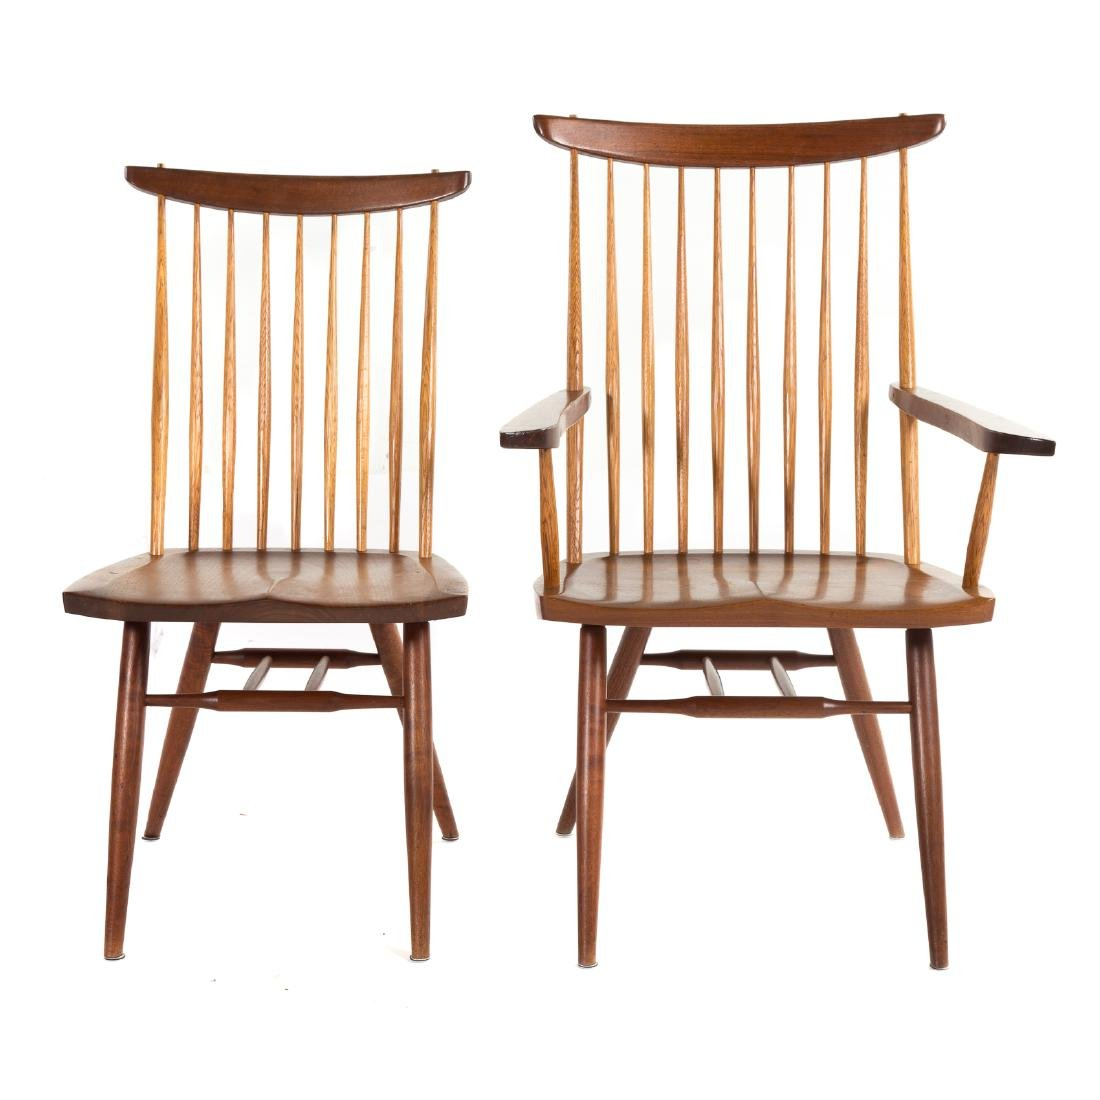 Set of Eight George Nakashima New Dining Chairs - 3